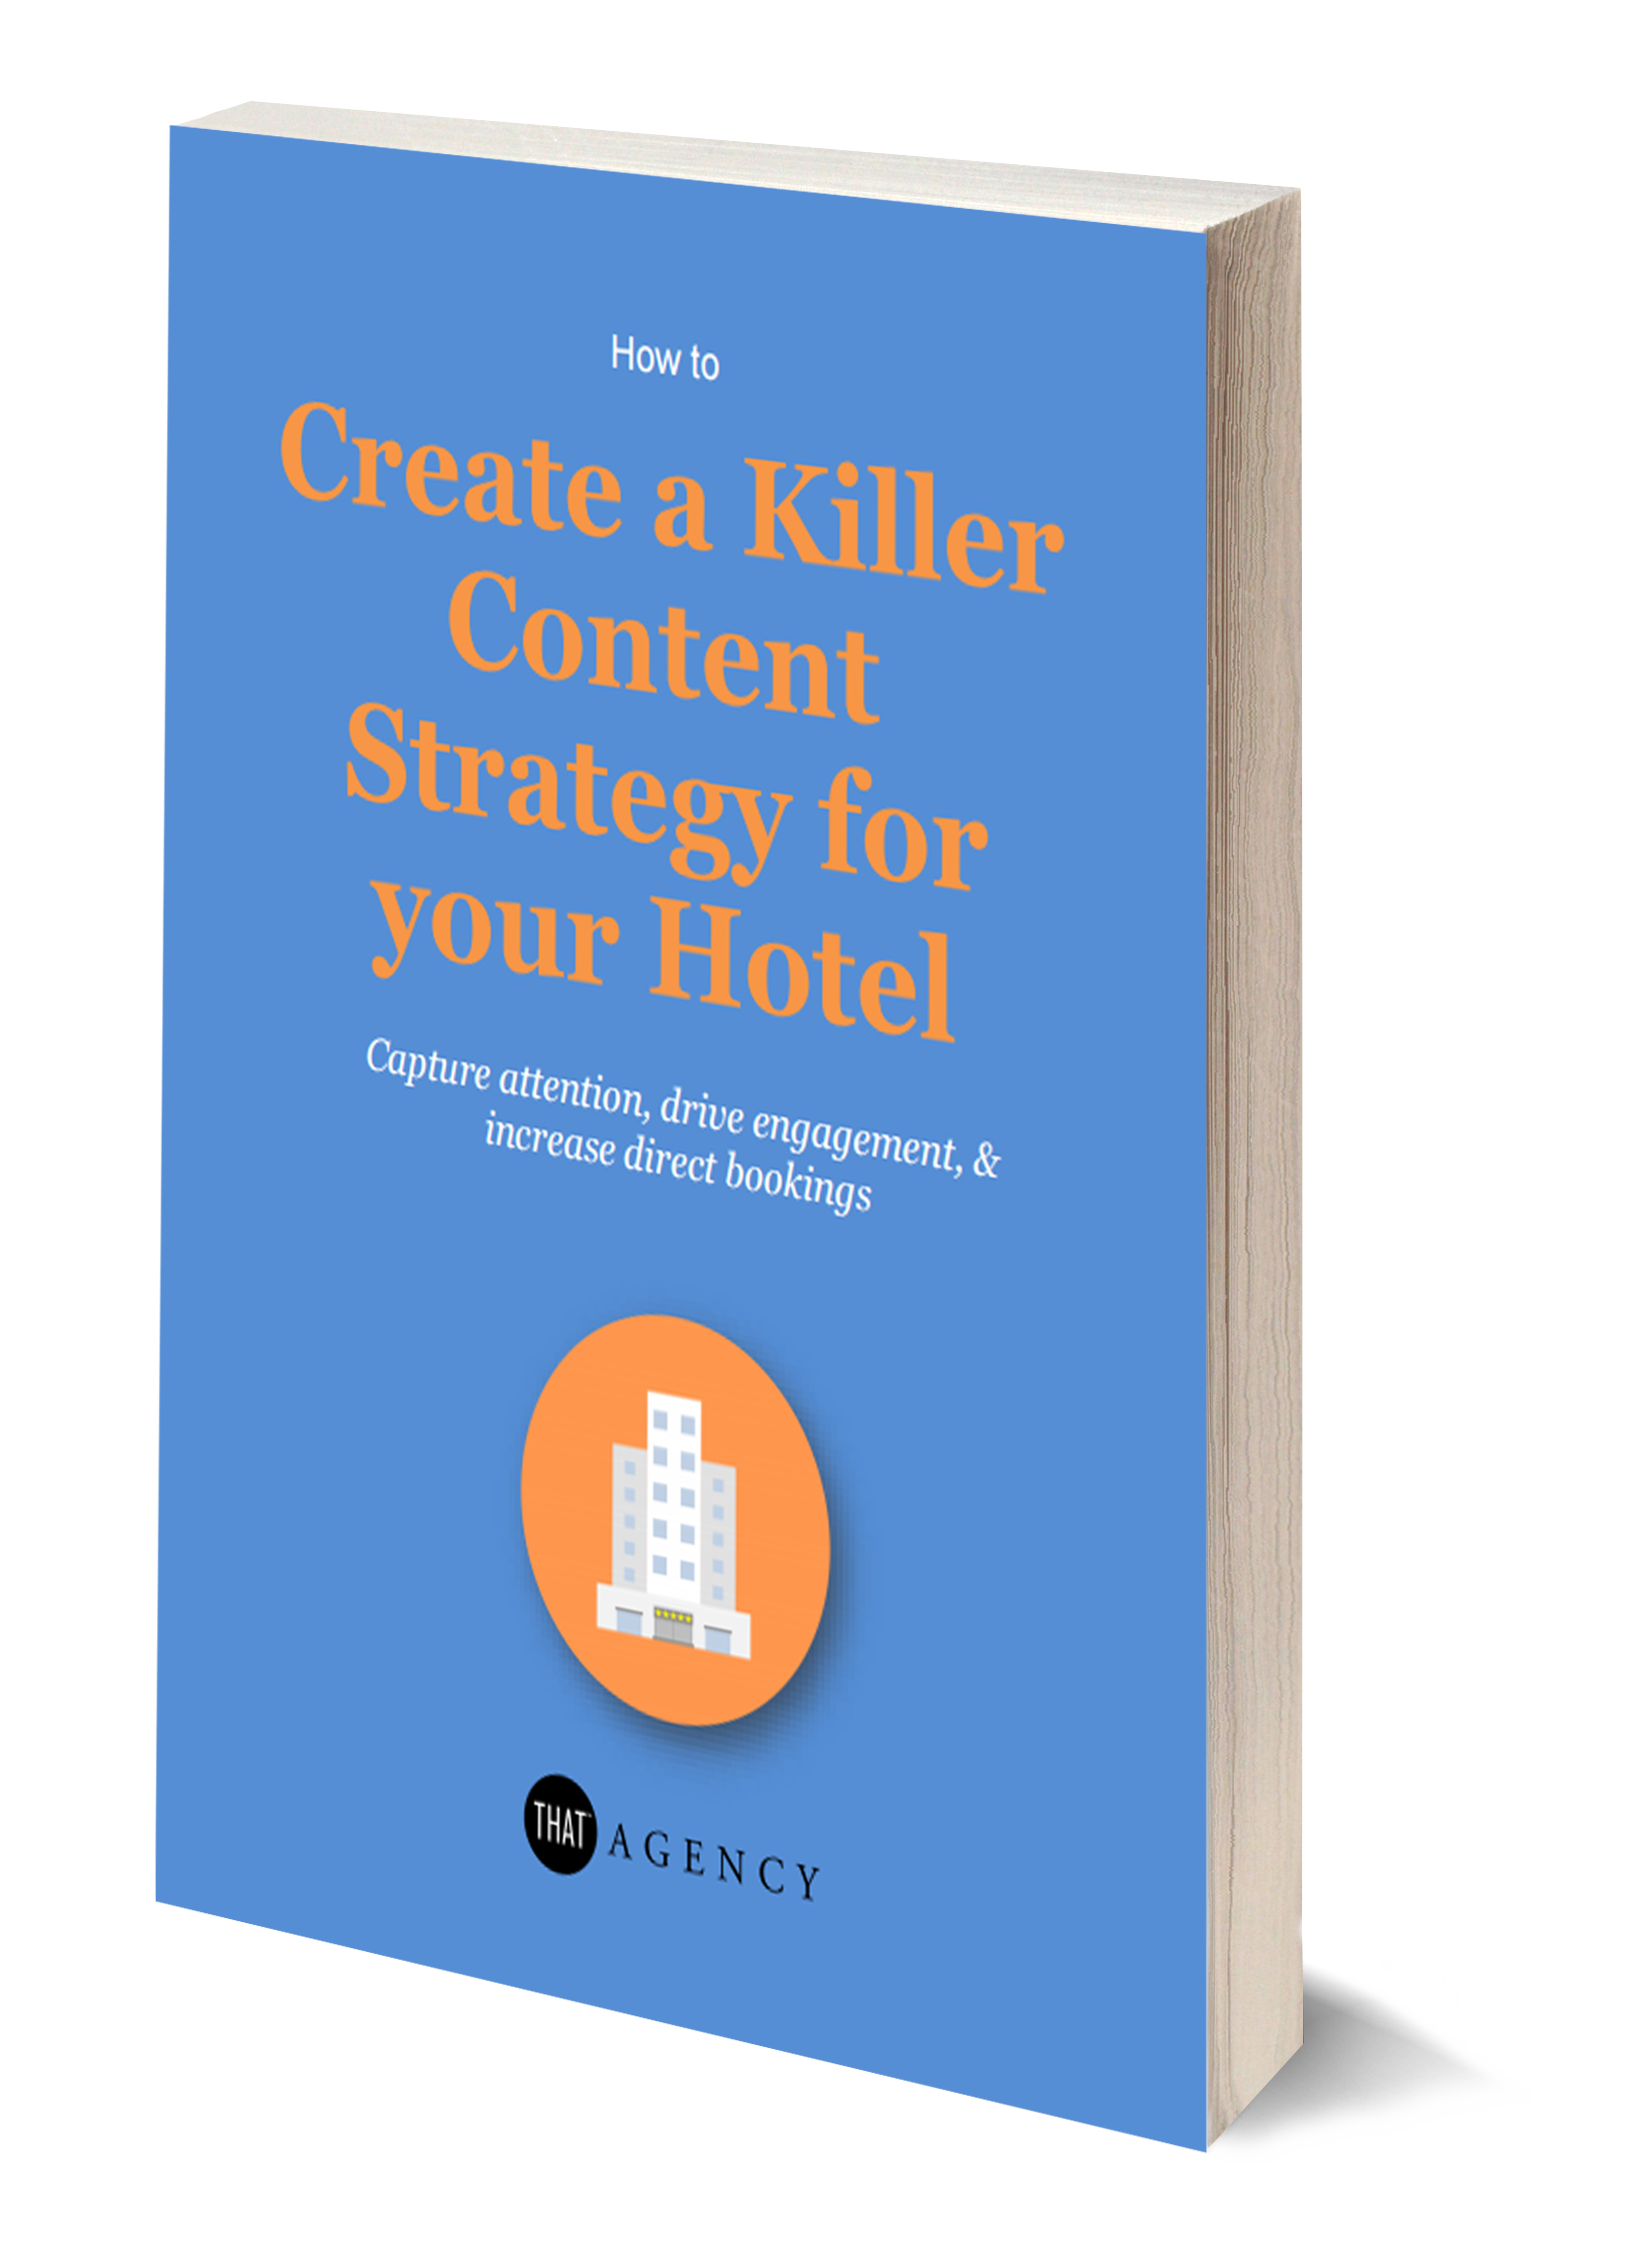 Content Marketing for Hotels   THAT Agency